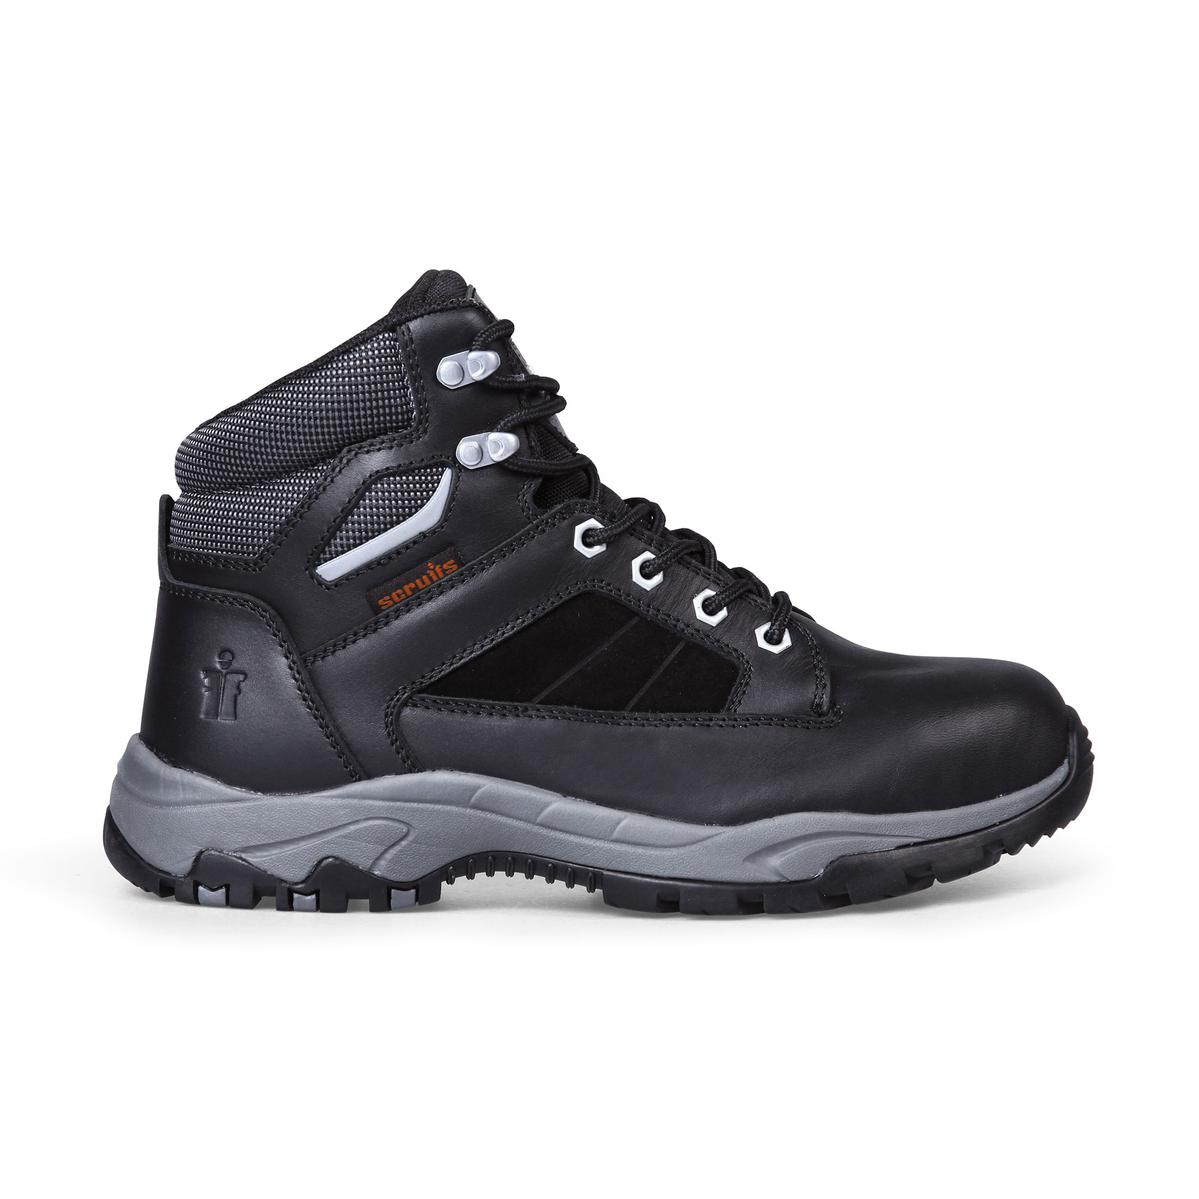 Scruffs Rapid Safety Boots